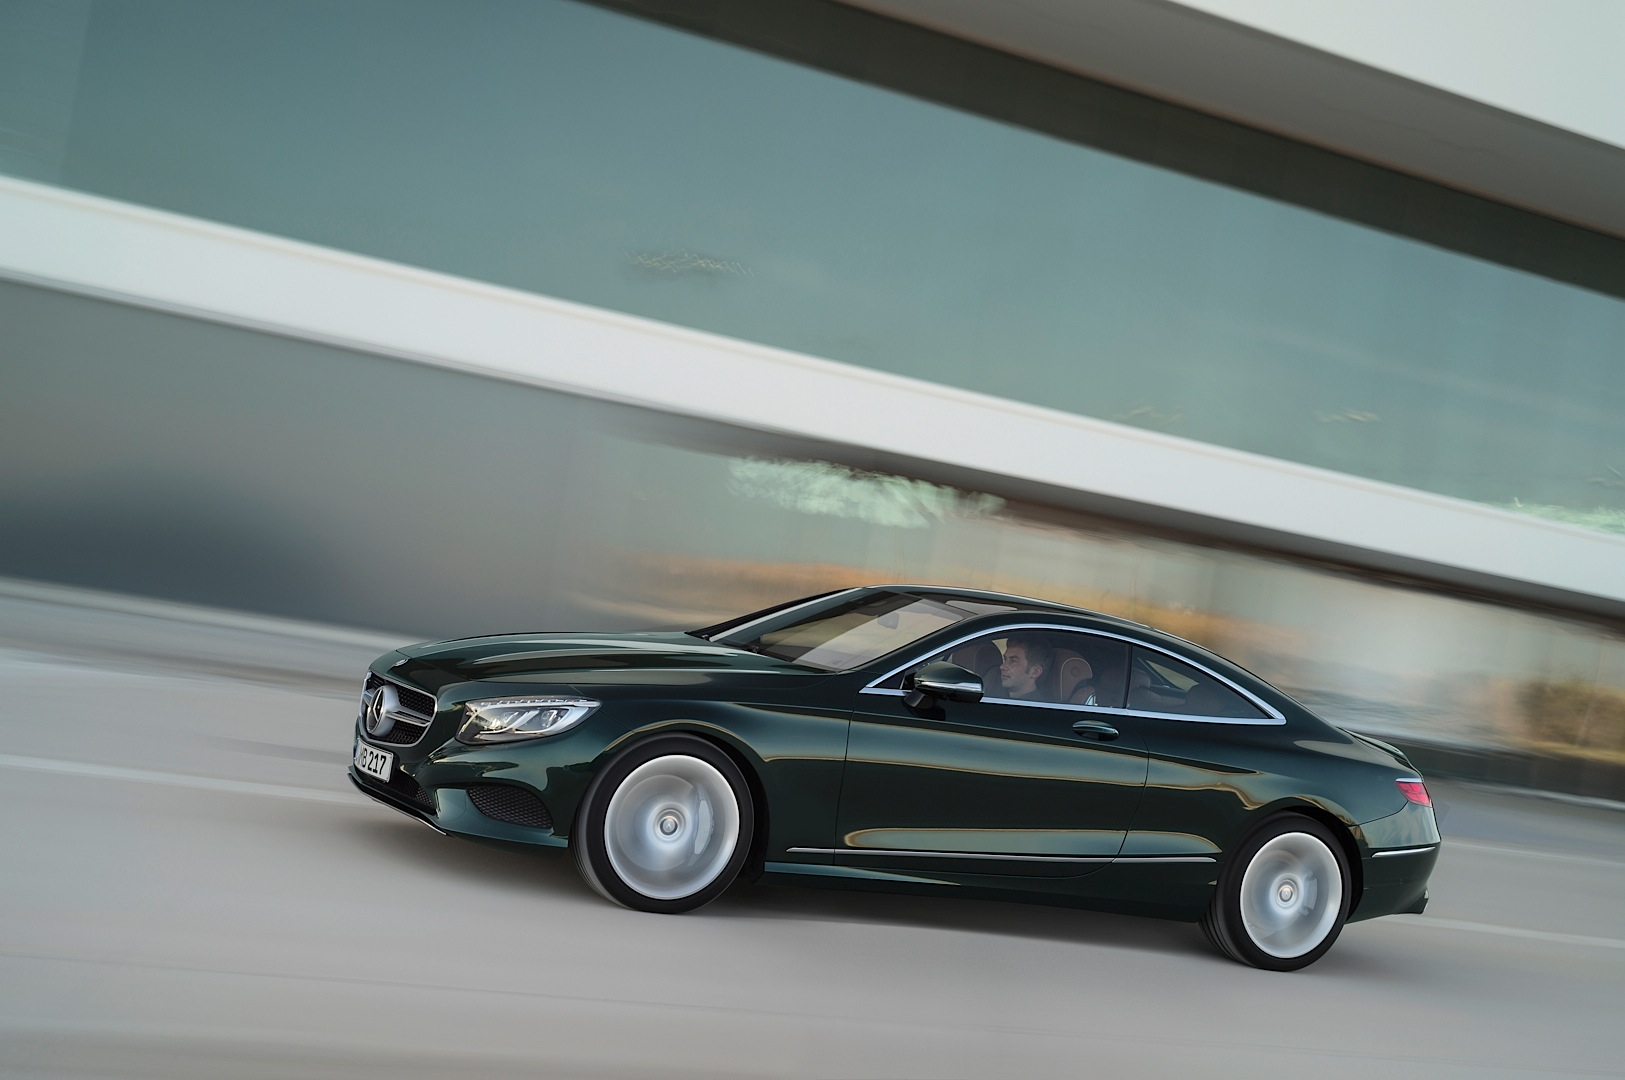 2015 mercedes benz s class coupe autoevolution for Mercedes benz s500 coupe